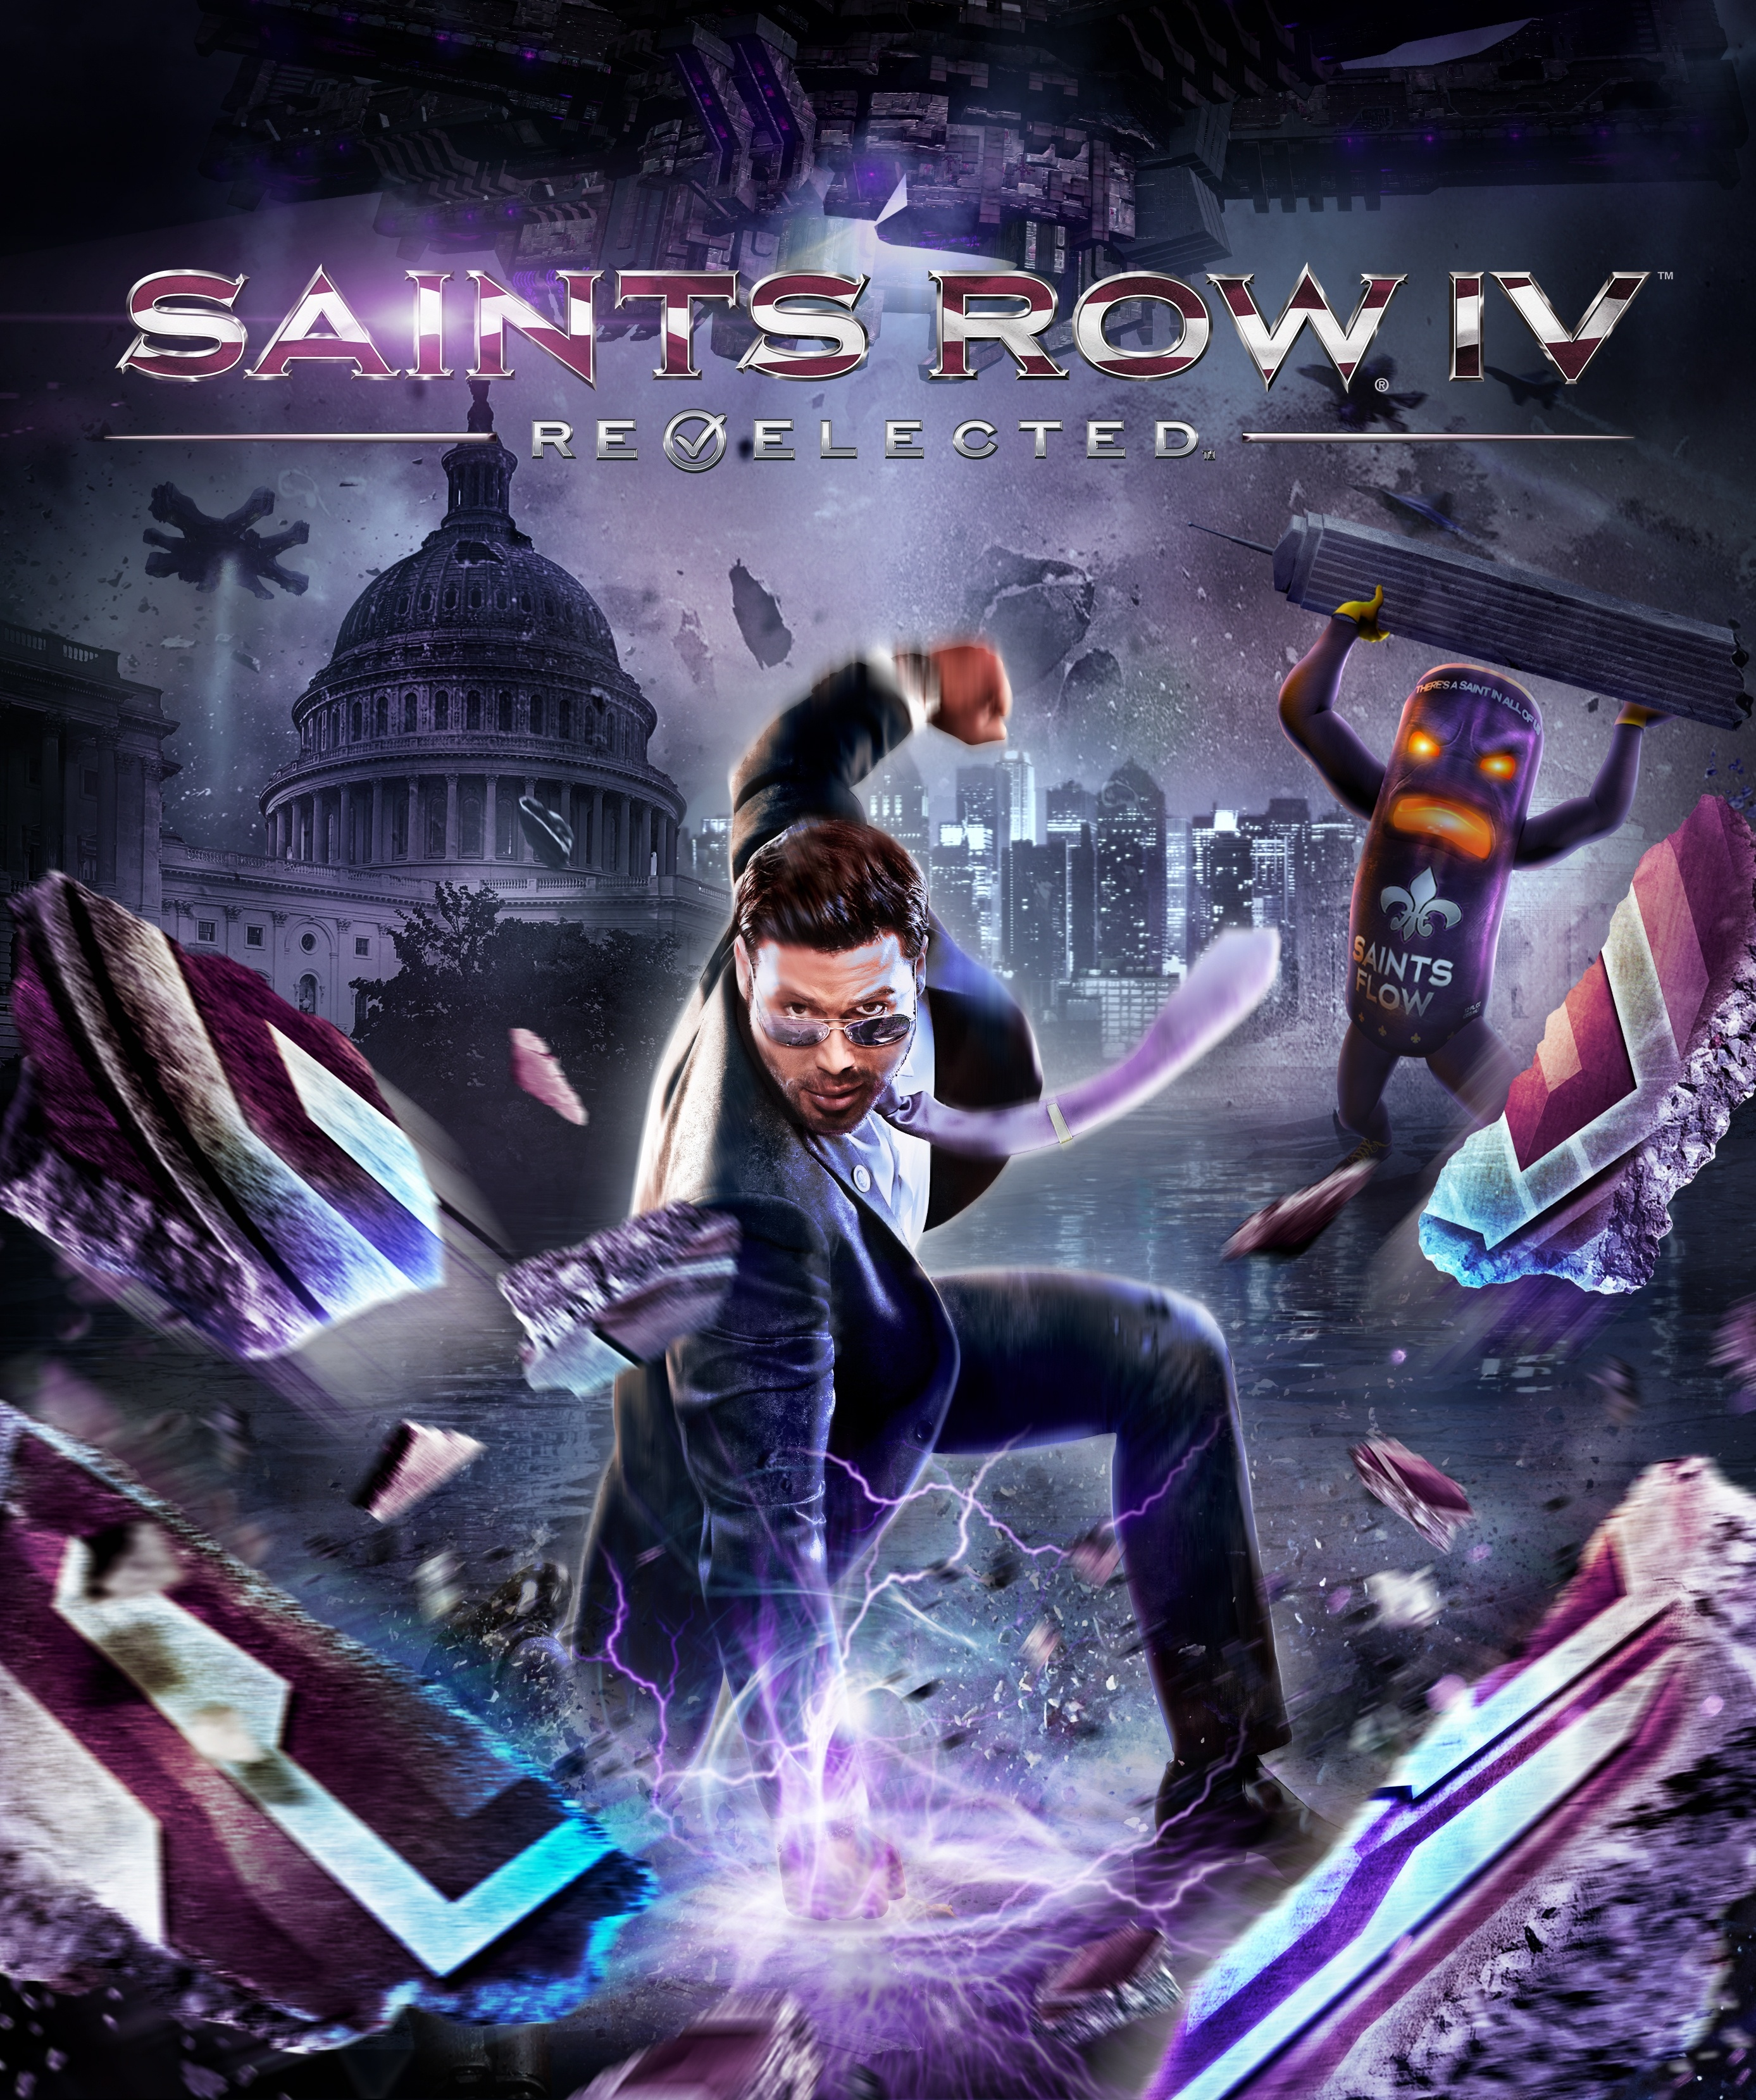 Saints Row IV. Re-Elected [PC, Цифровая версия] (Цифровая версия) saints row 4 super dangerous wad wad edition